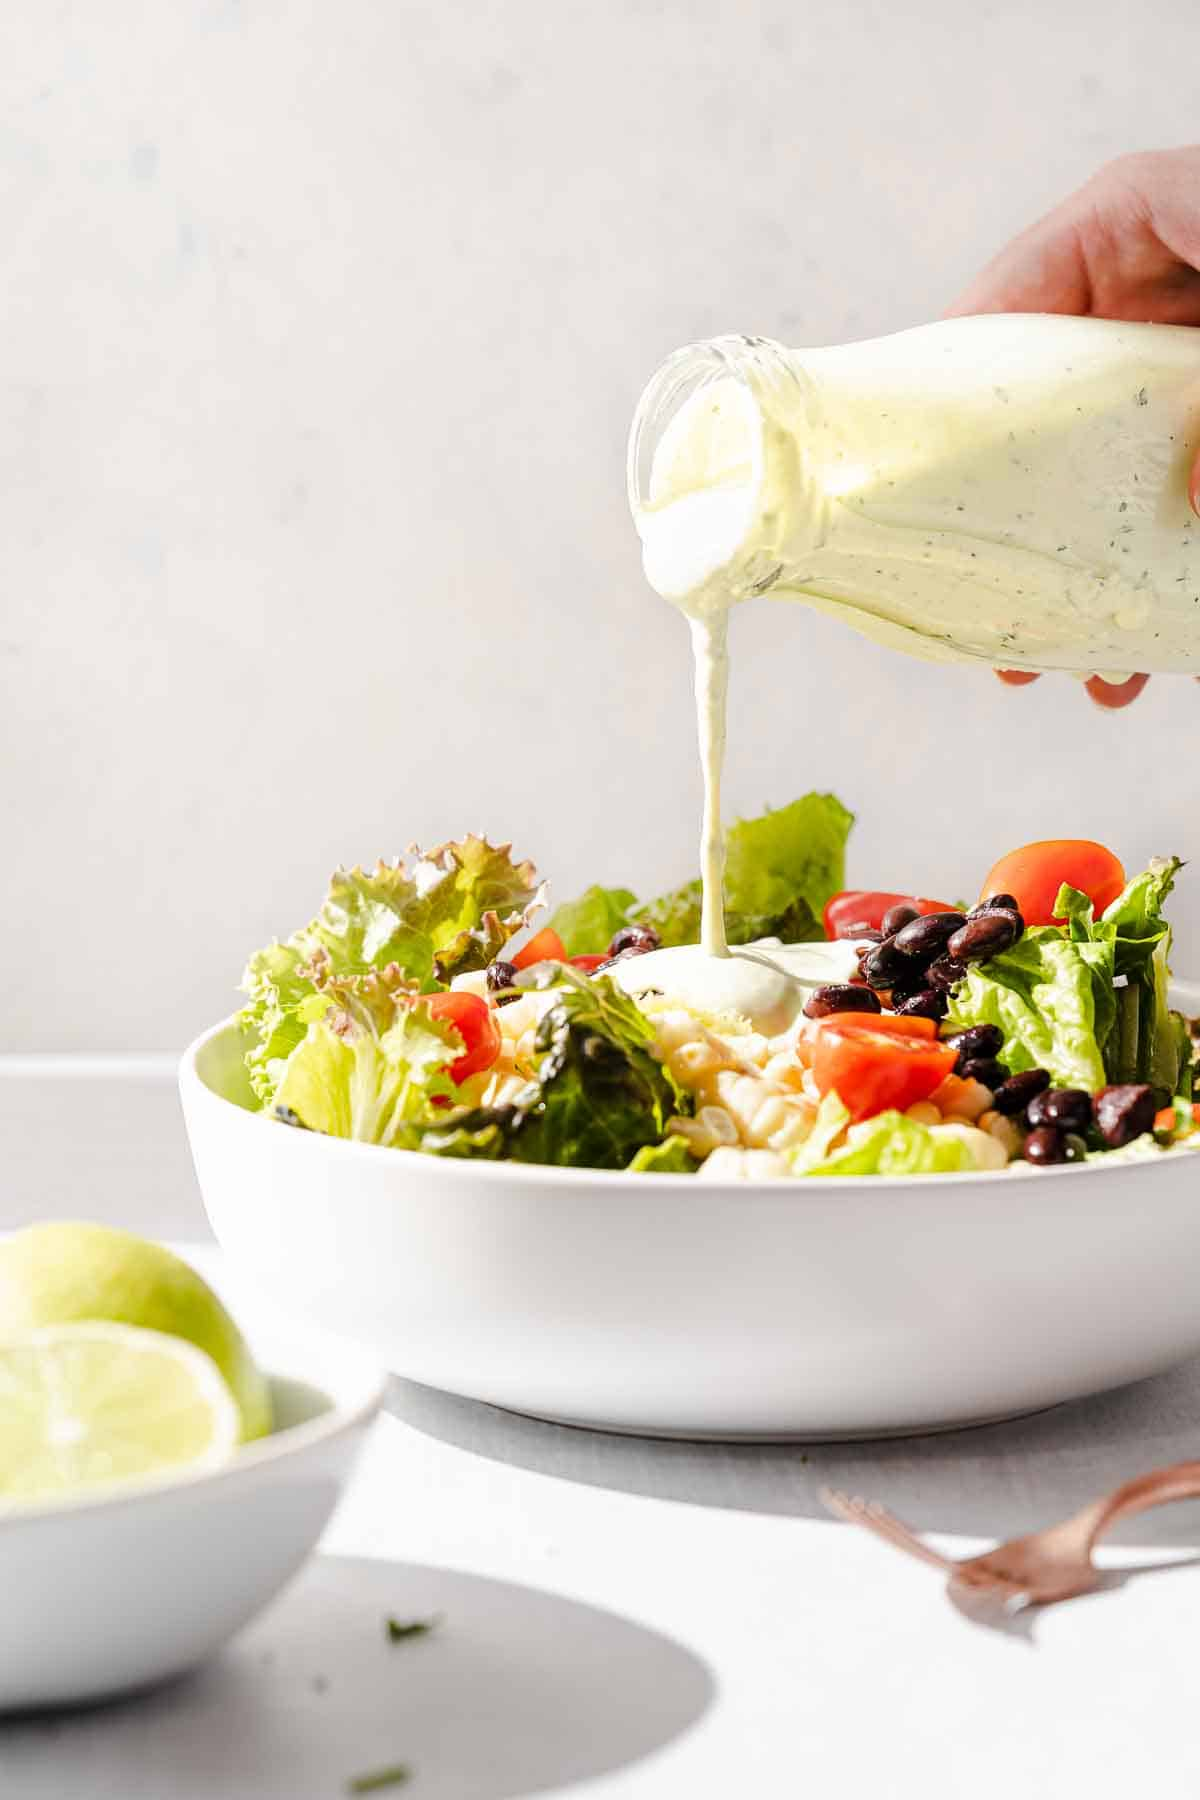 dressing being poured onto a salad